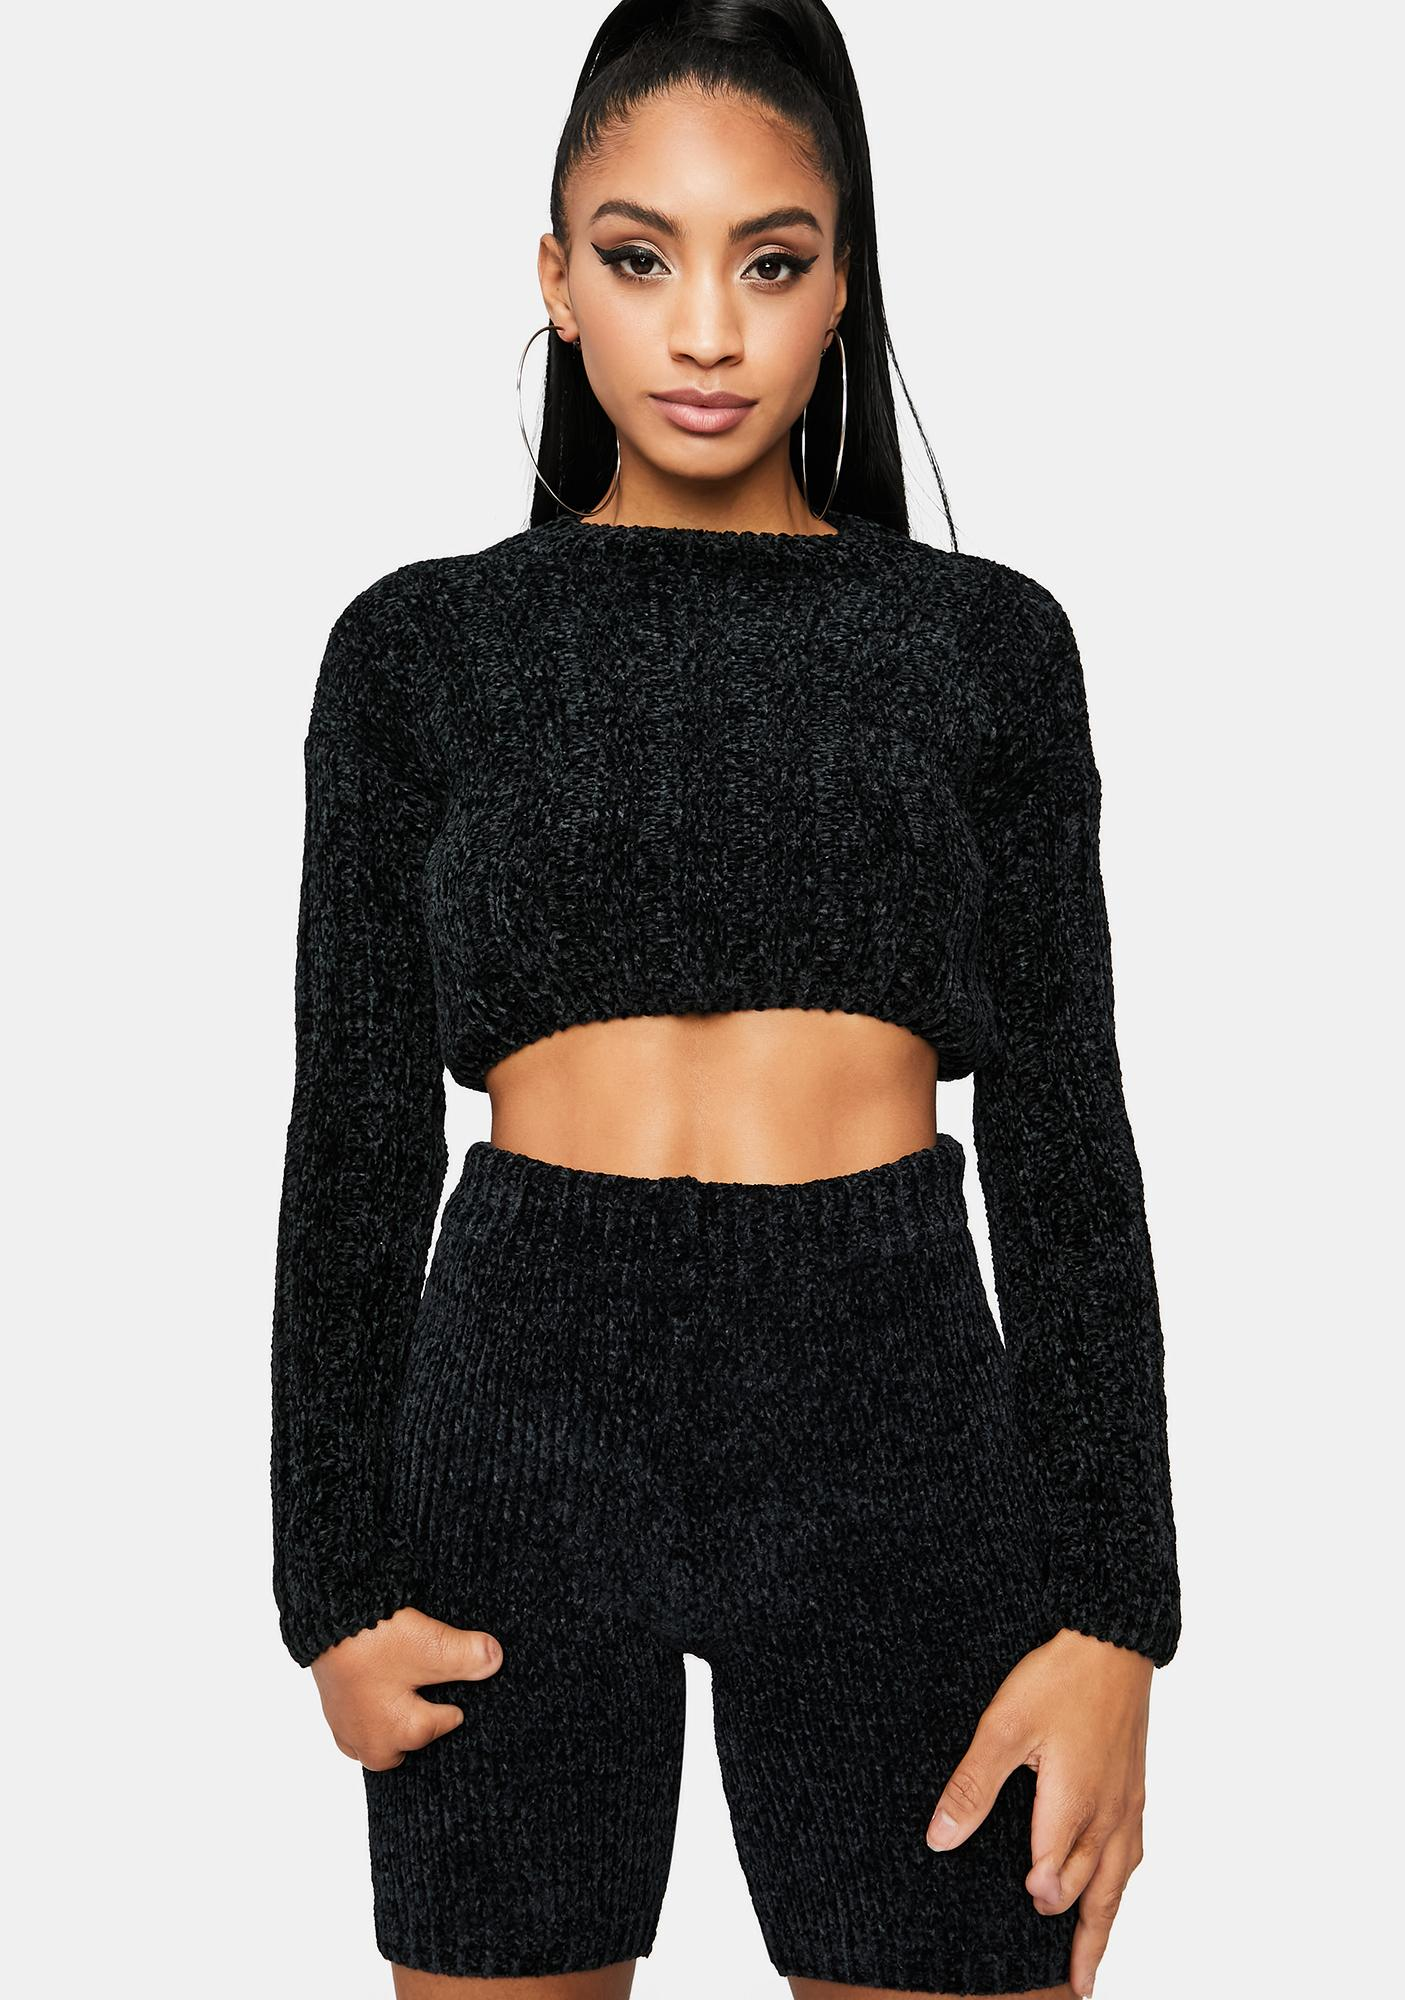 Onyx Blossom in Love Cropped Sweater